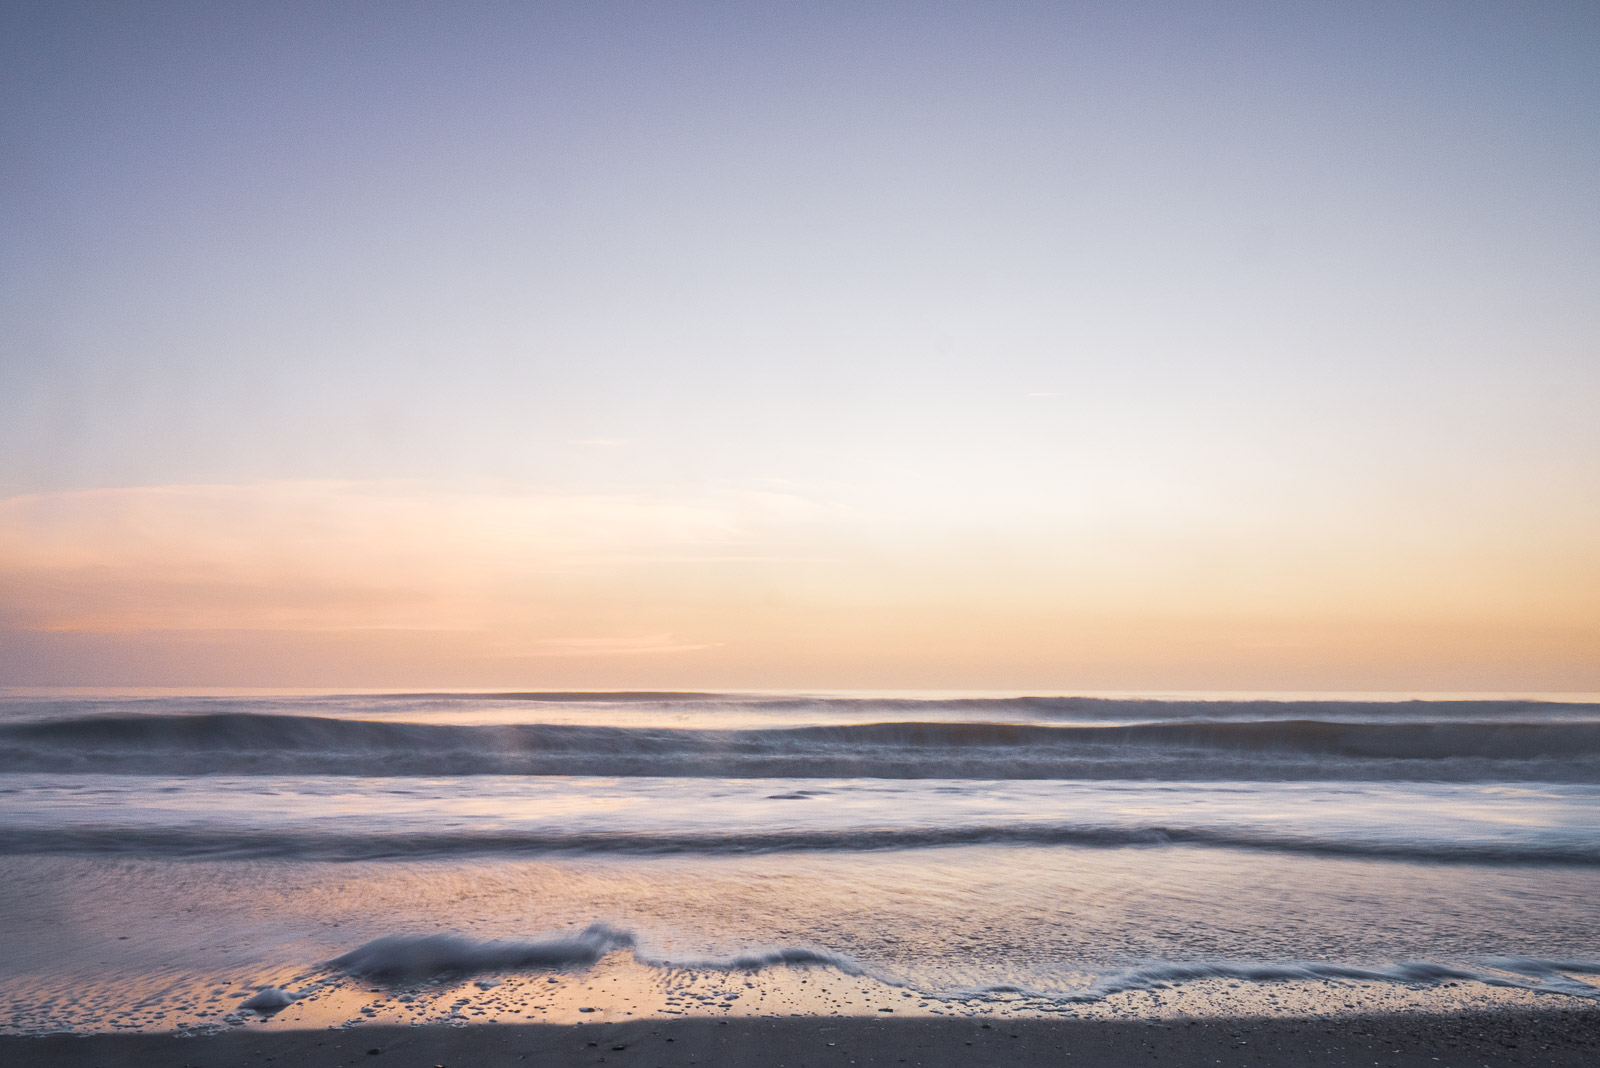 The beach at sunset: What's next for the photographer mom?